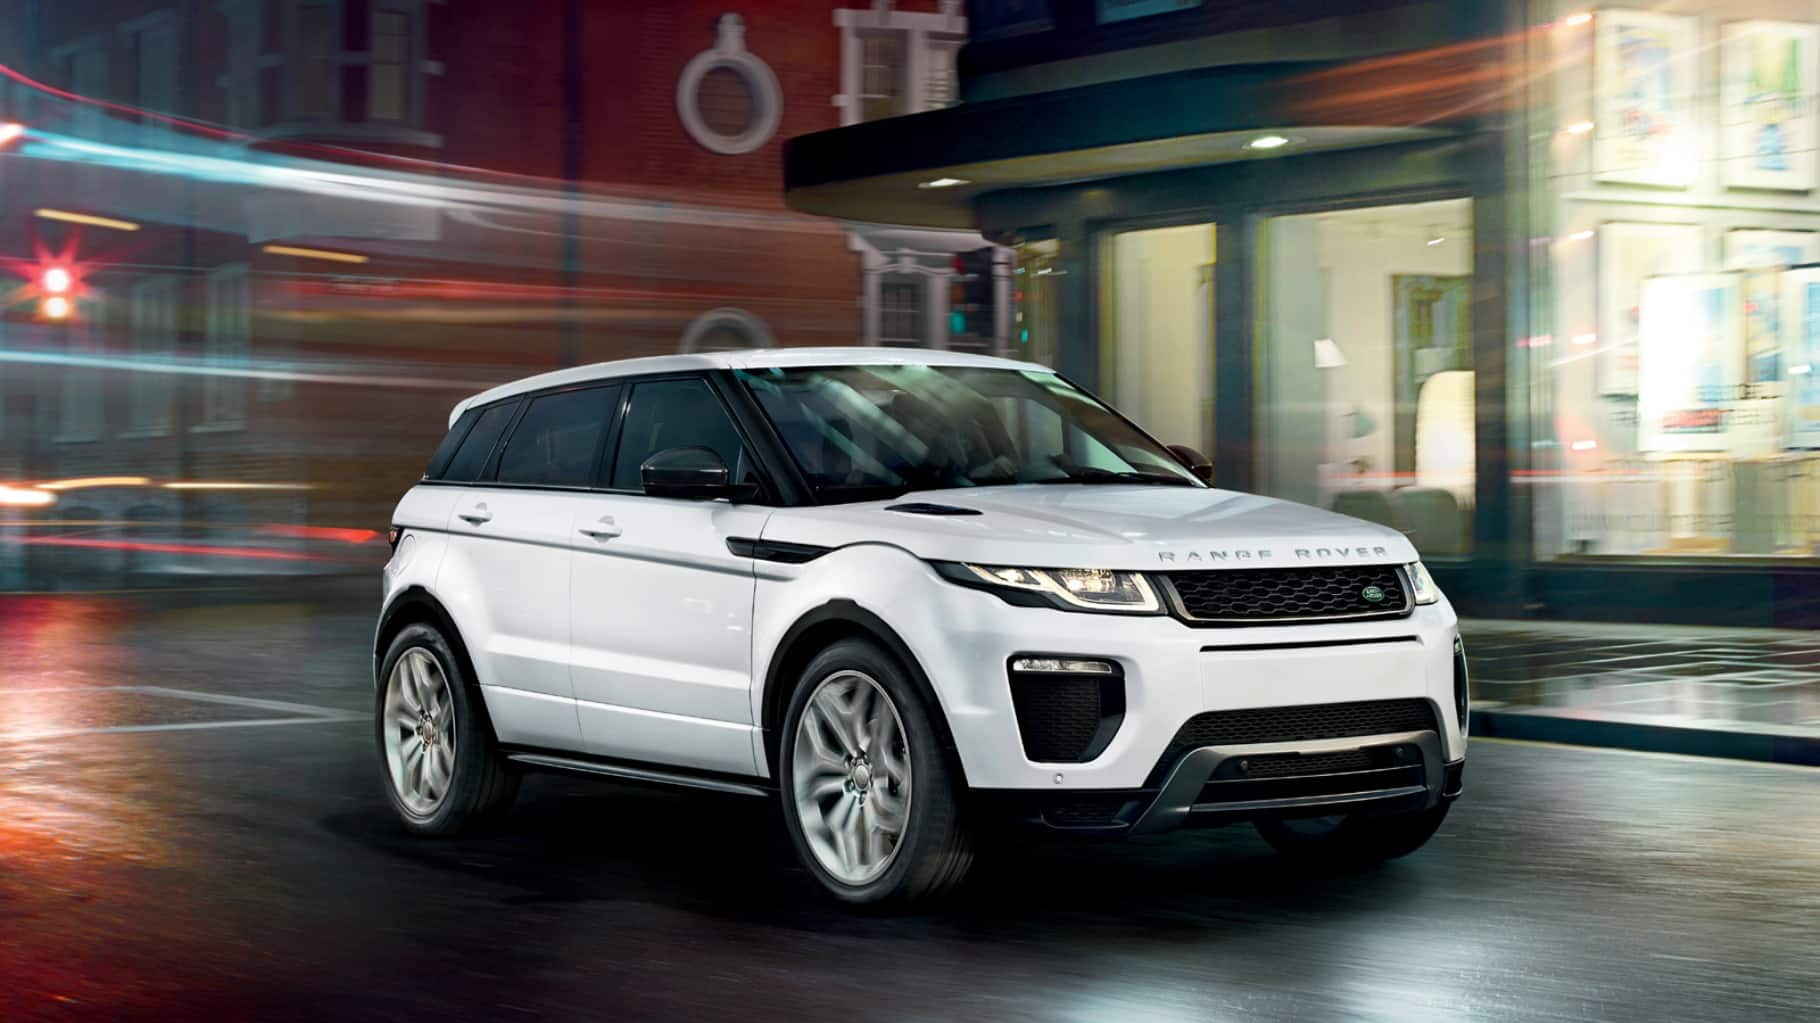 lrdx special offers glhd lease diesel rover financing s en range current land canada and index velar landrover